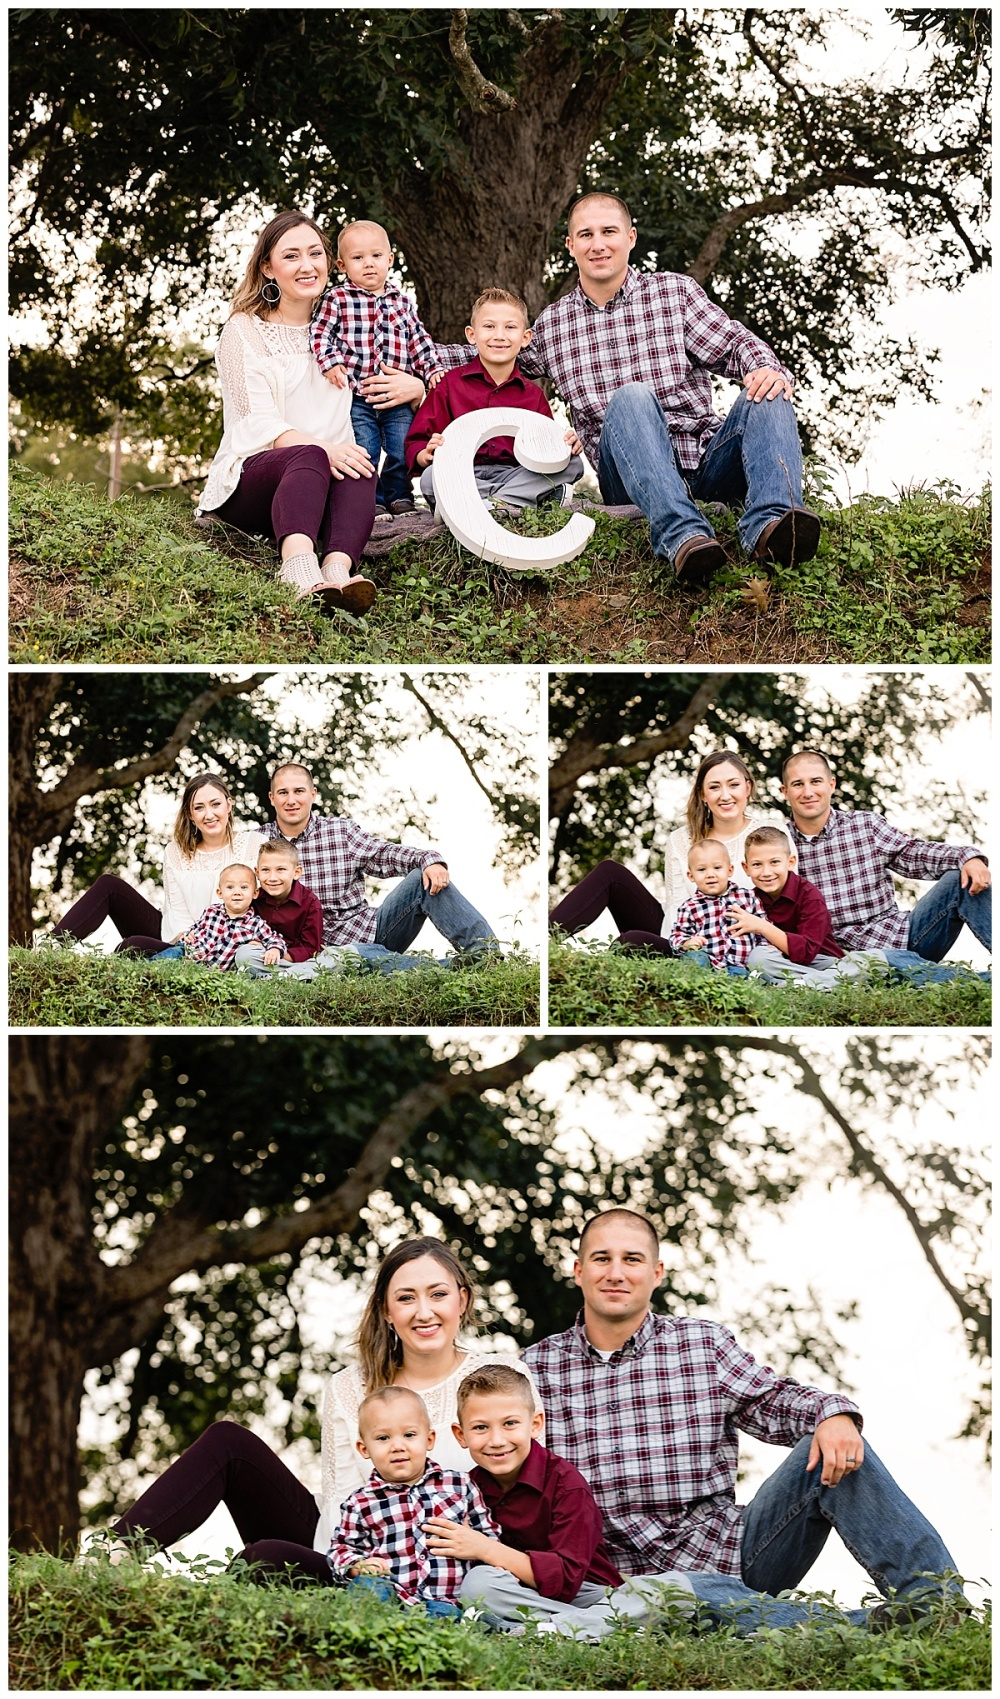 Family-Photographer-LaVernia-Texas-Fall-Carly-Barton-Photography_0008.jpg